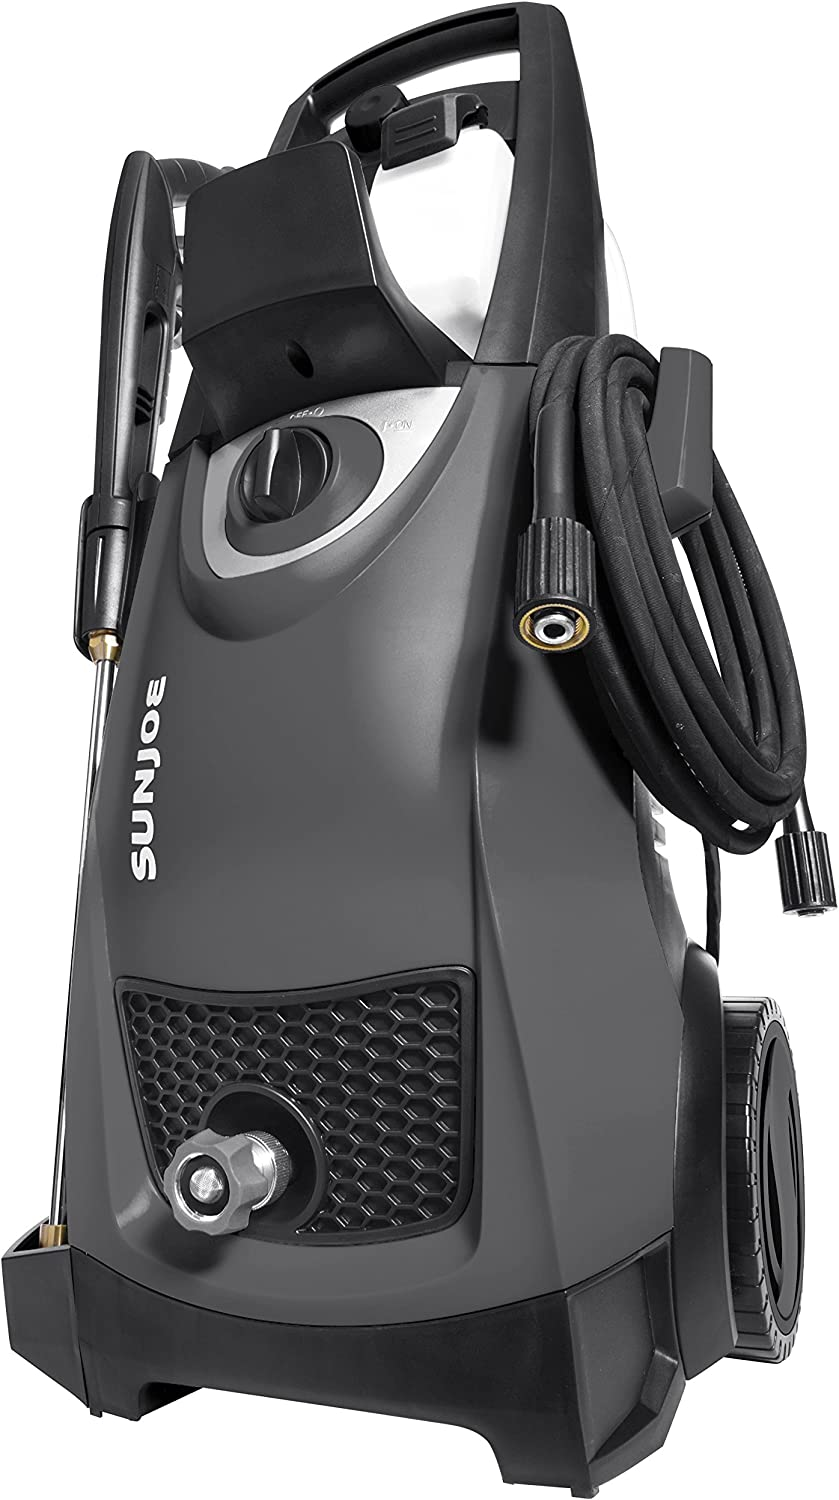 PRYMAX Pressure Washer 3000 PSI 1.85 GPM Brushless Induction Car Electric Power Washer with Foam Cannon and Interchangeable Nozzles